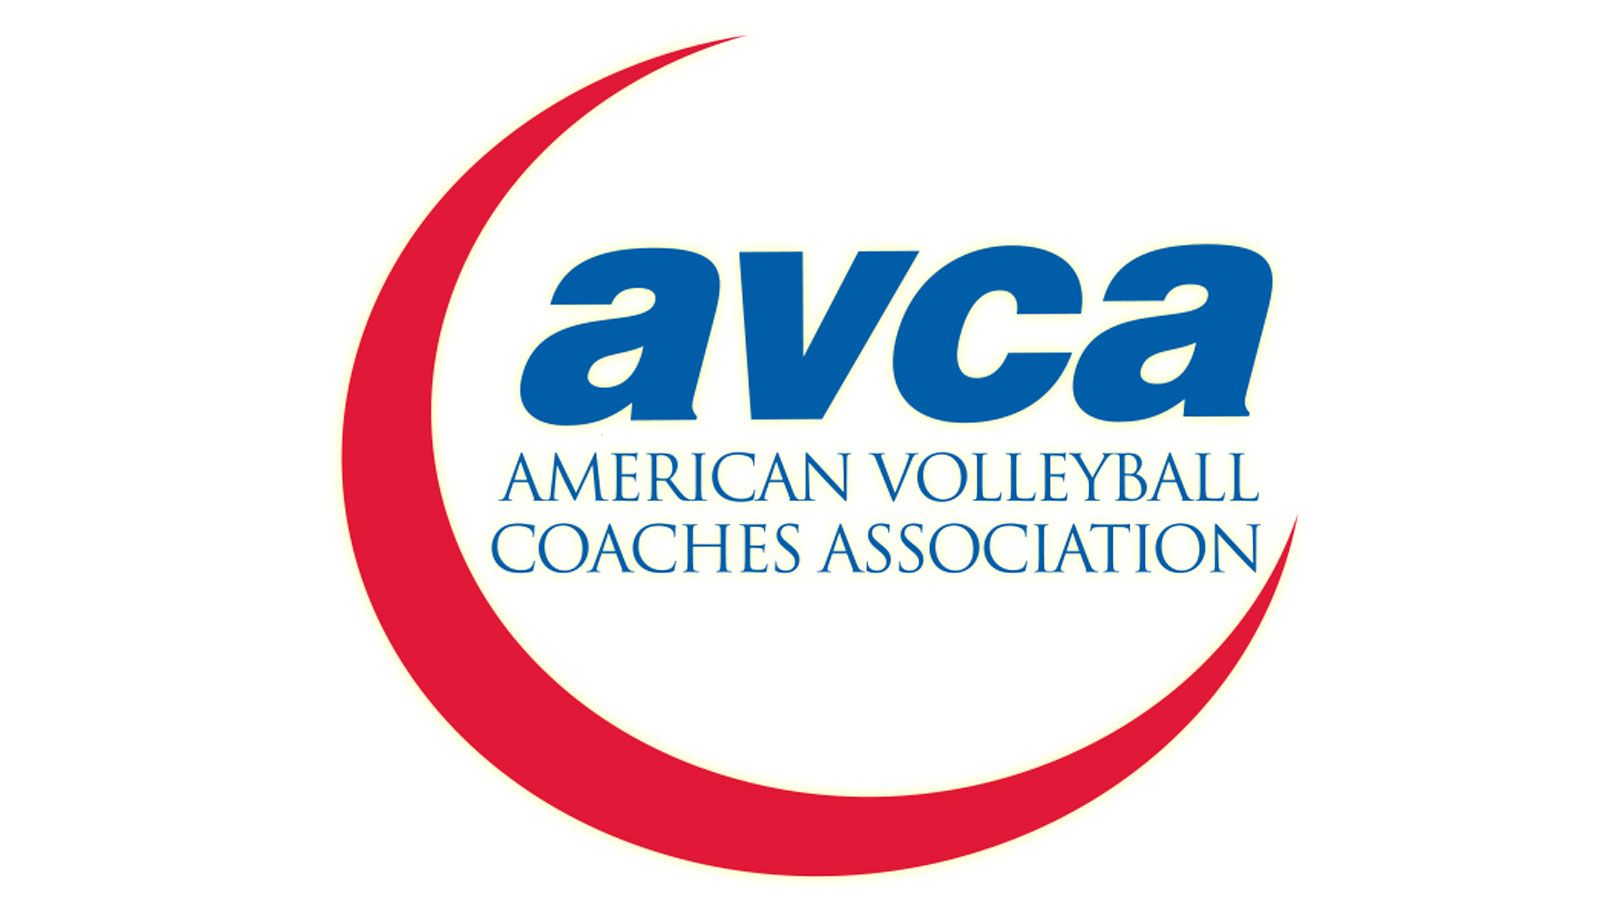 SEC teams earn AVCA Team Academic Award